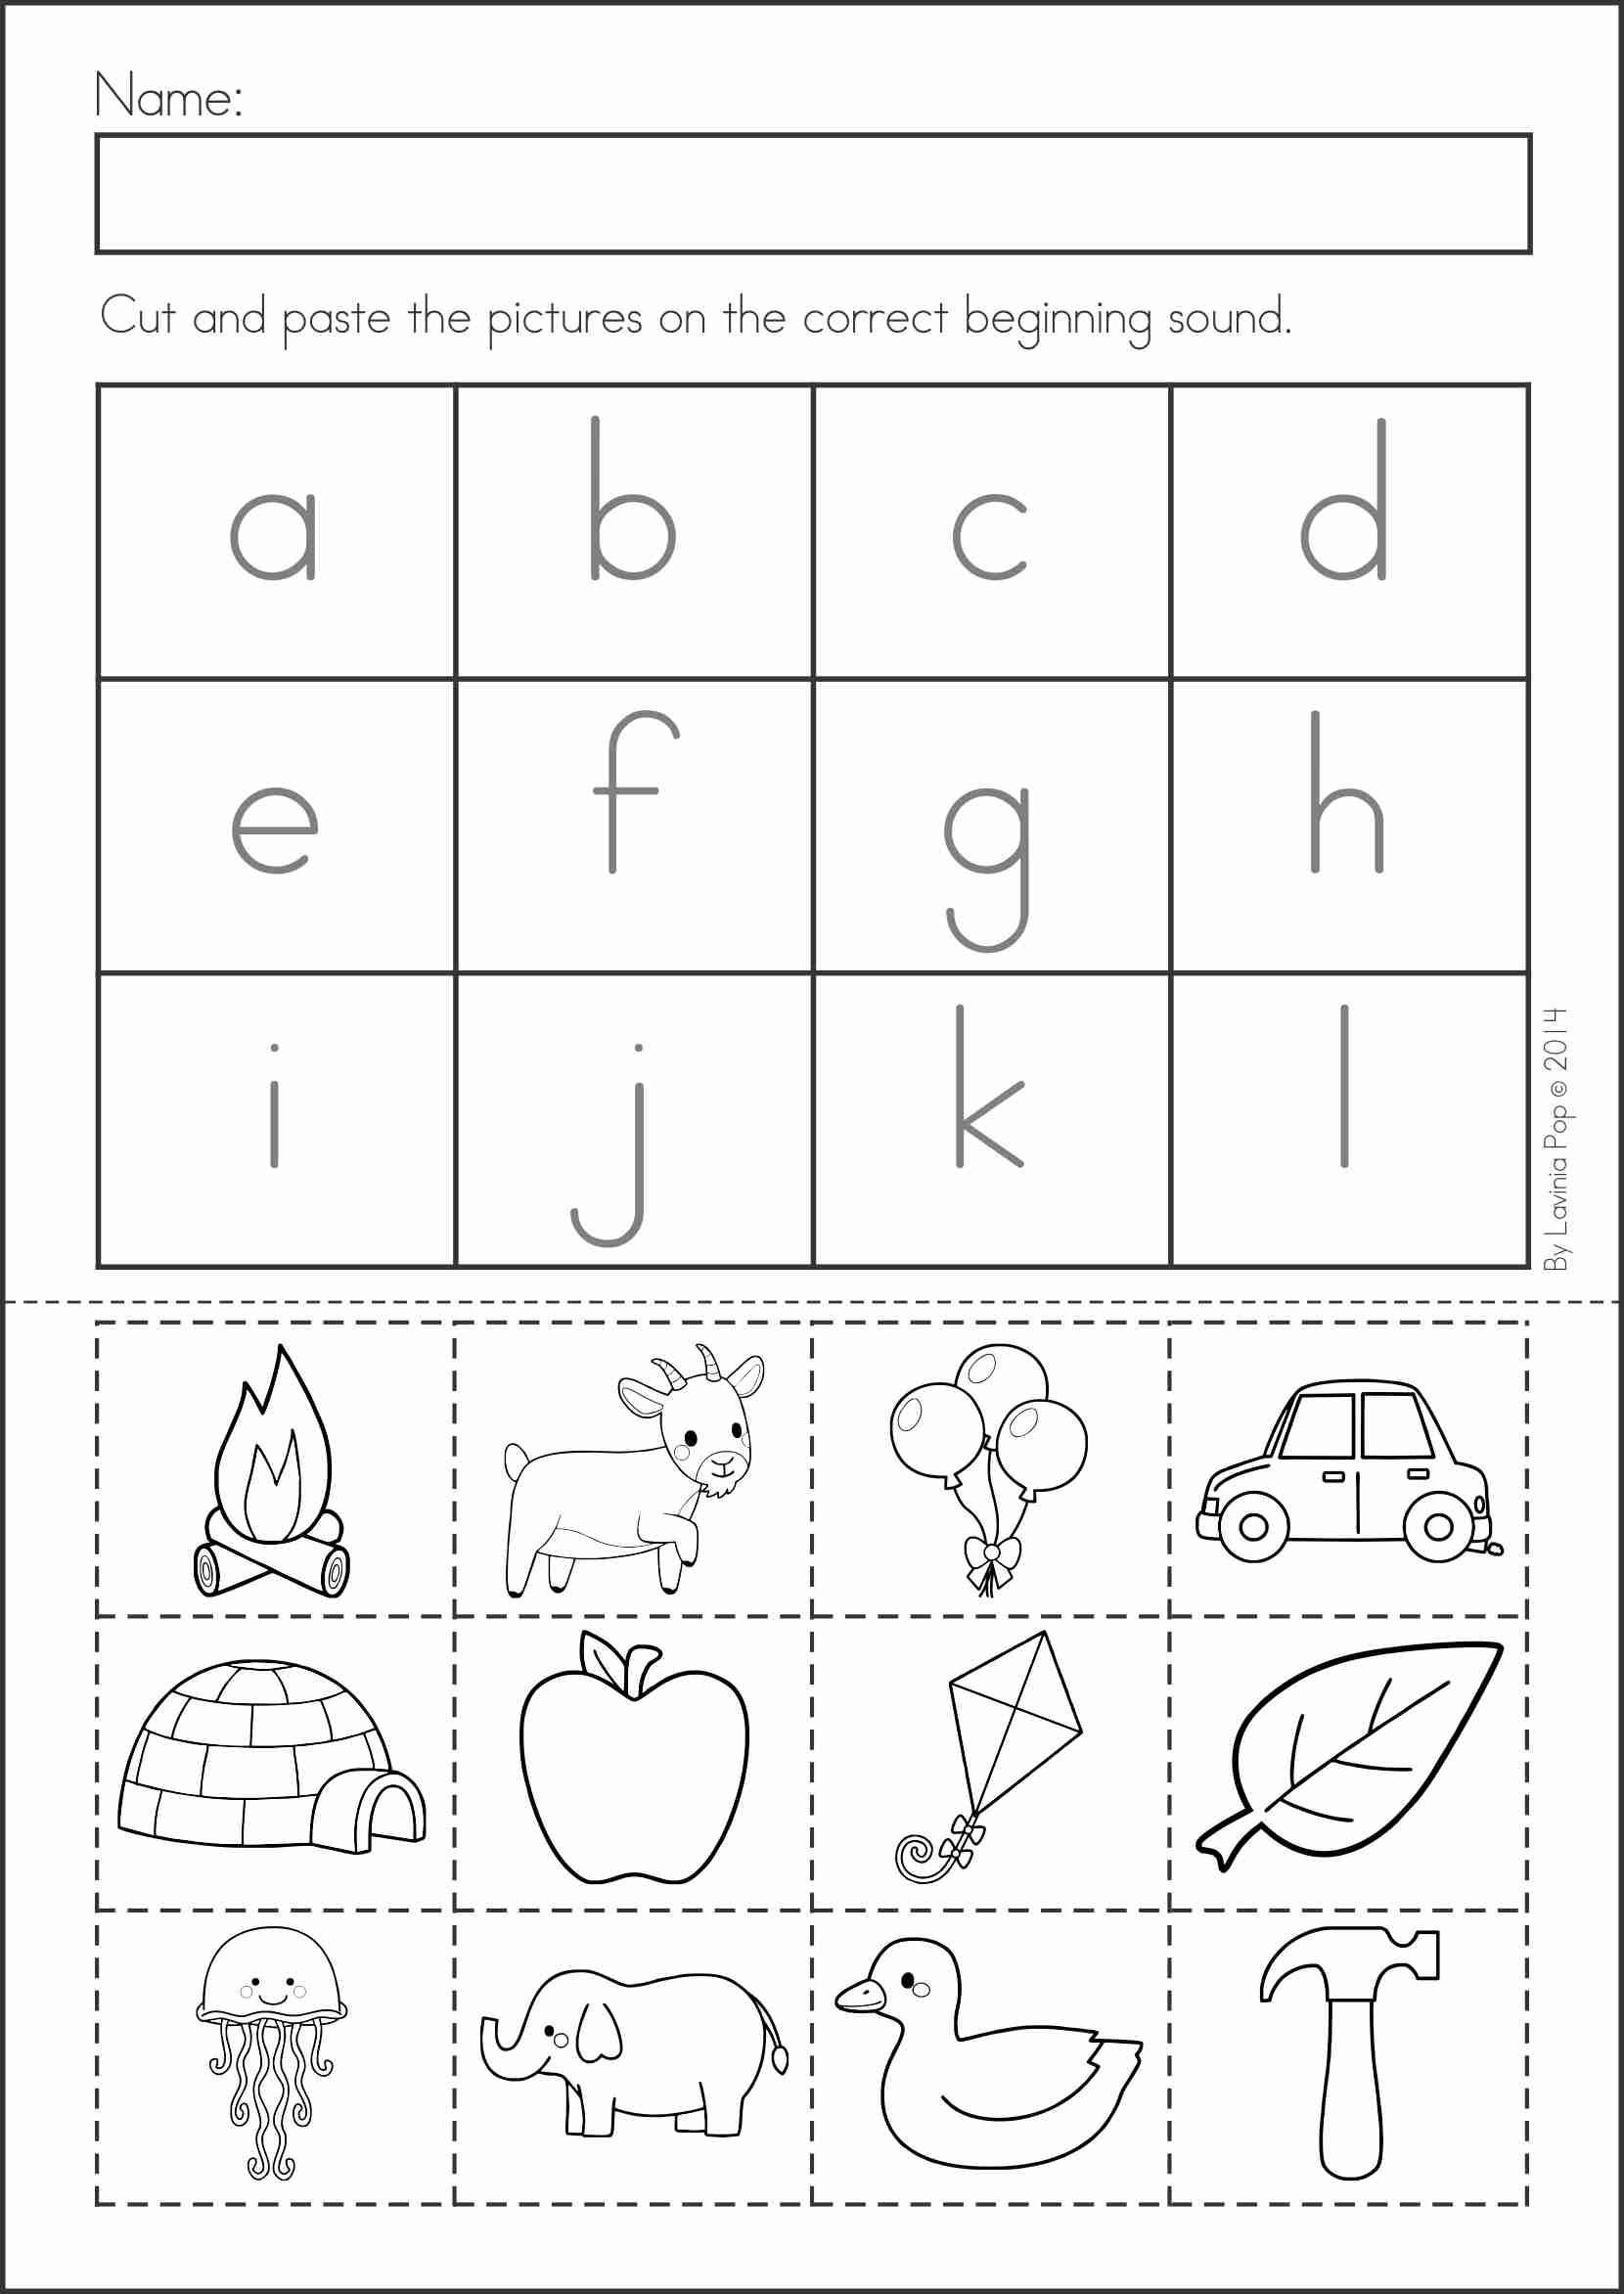 Printable Cut and Paste Worksheets Summer Review Kindergarten Math & Literacy Worksheets